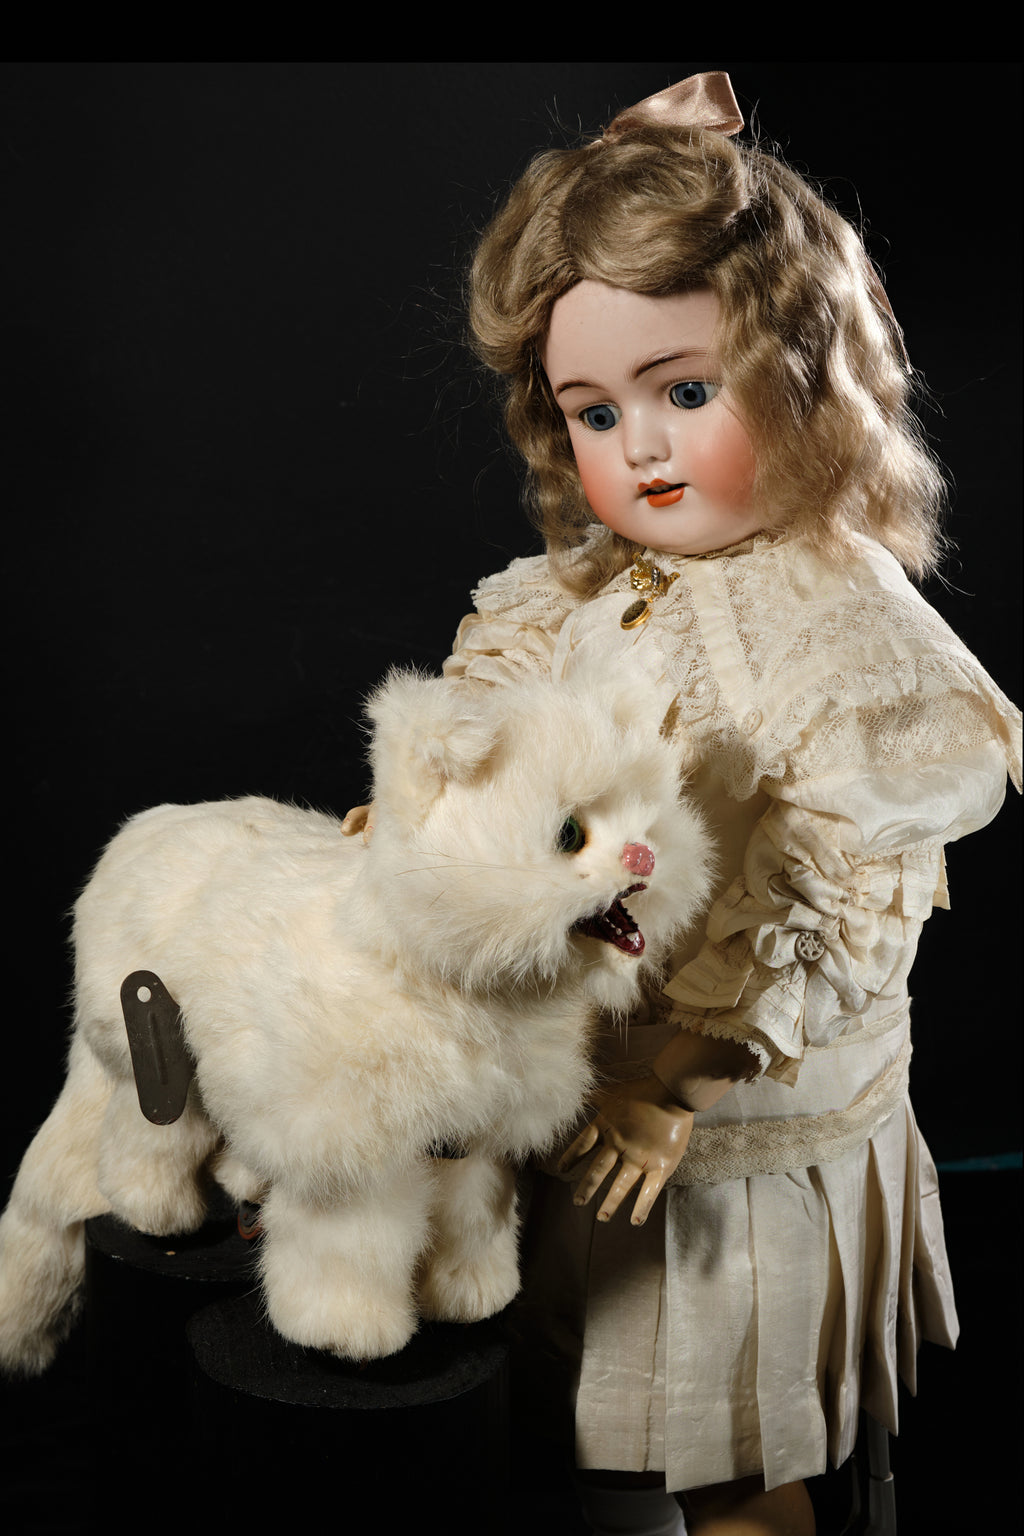 Simon & Halbig Antique Porcelain Doll with Windup Toy Cat.  SOLD